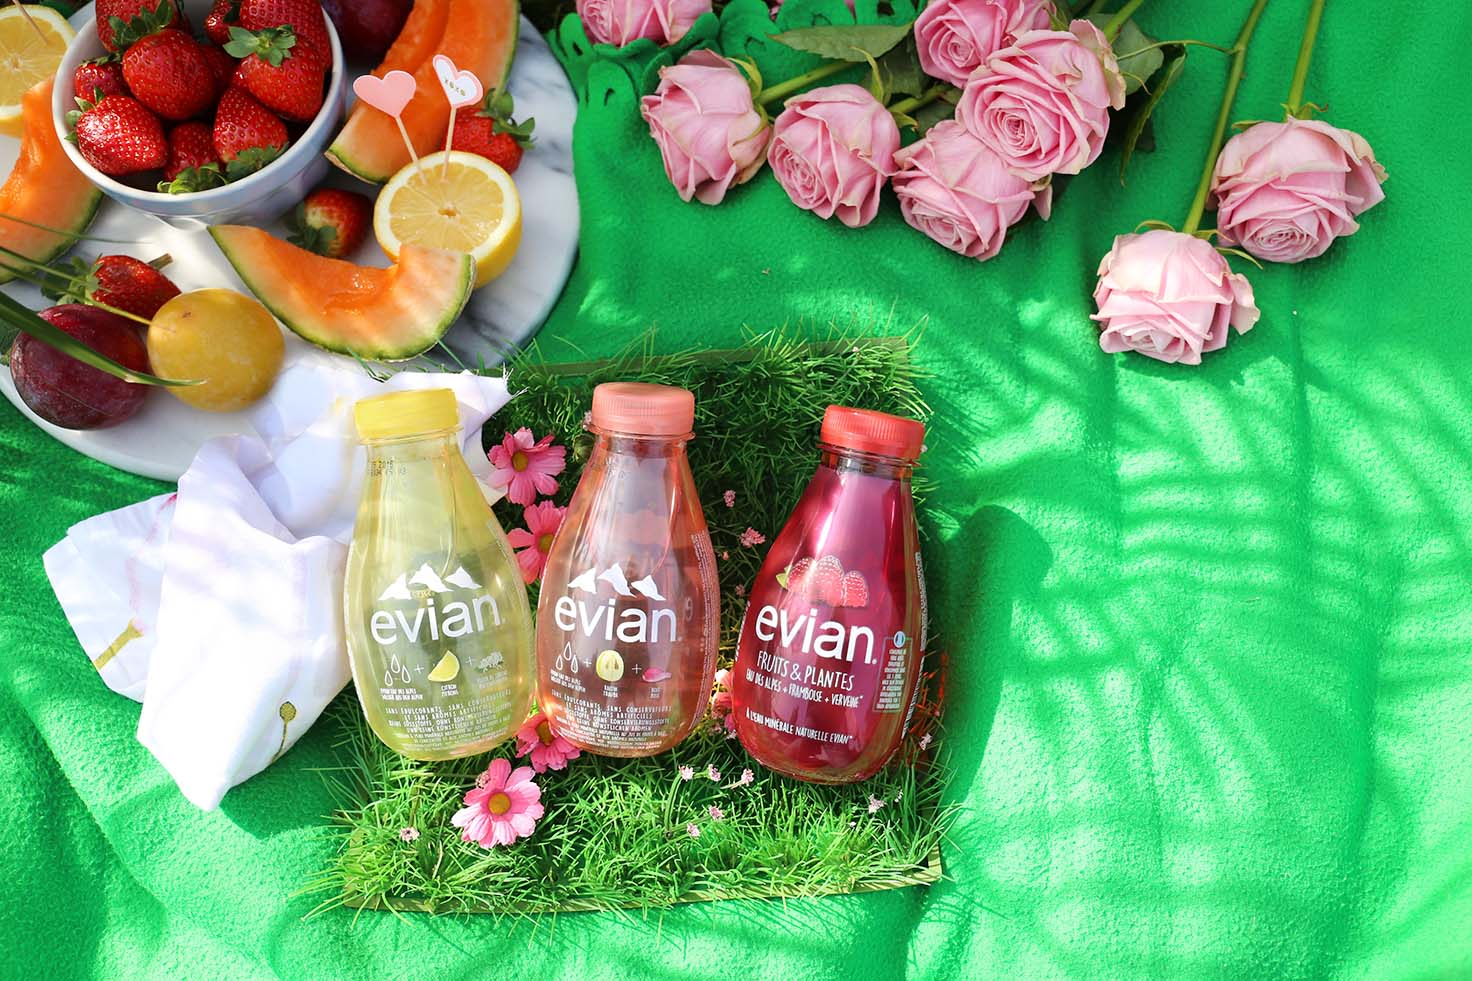 New Evian Fruits and Plants